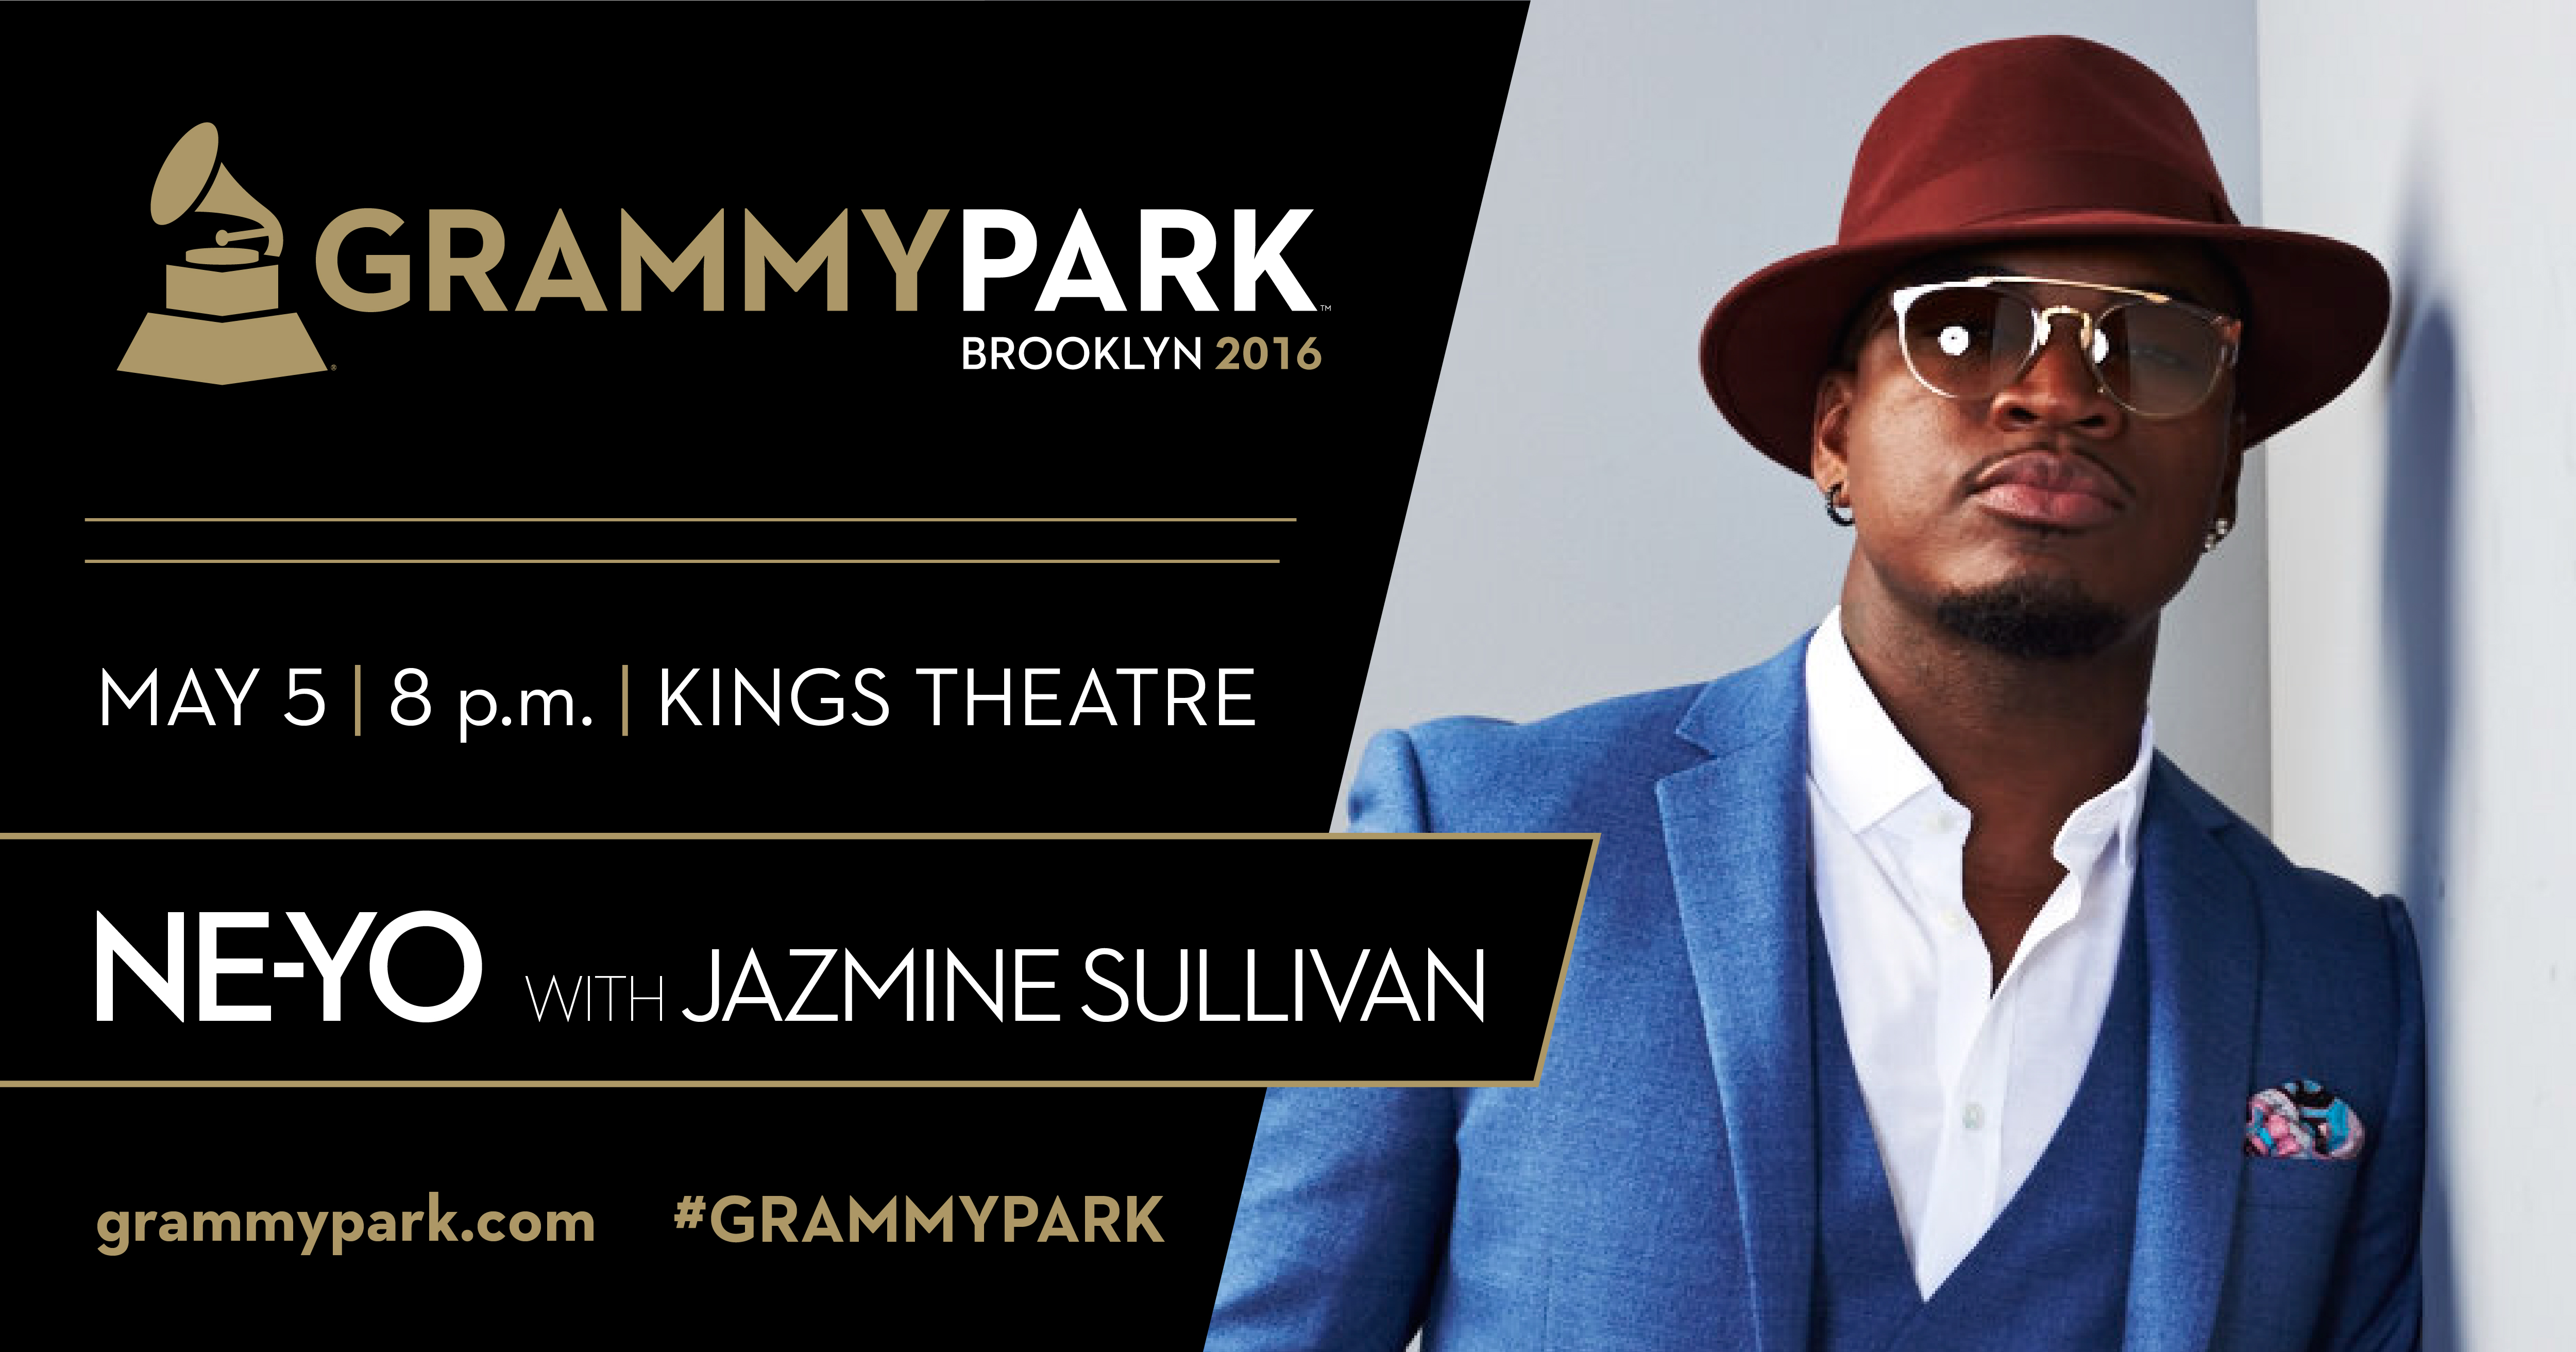 Ne-Yo with Jazmine Sullivan, live at Kings Theatre for GRAMMY Park.